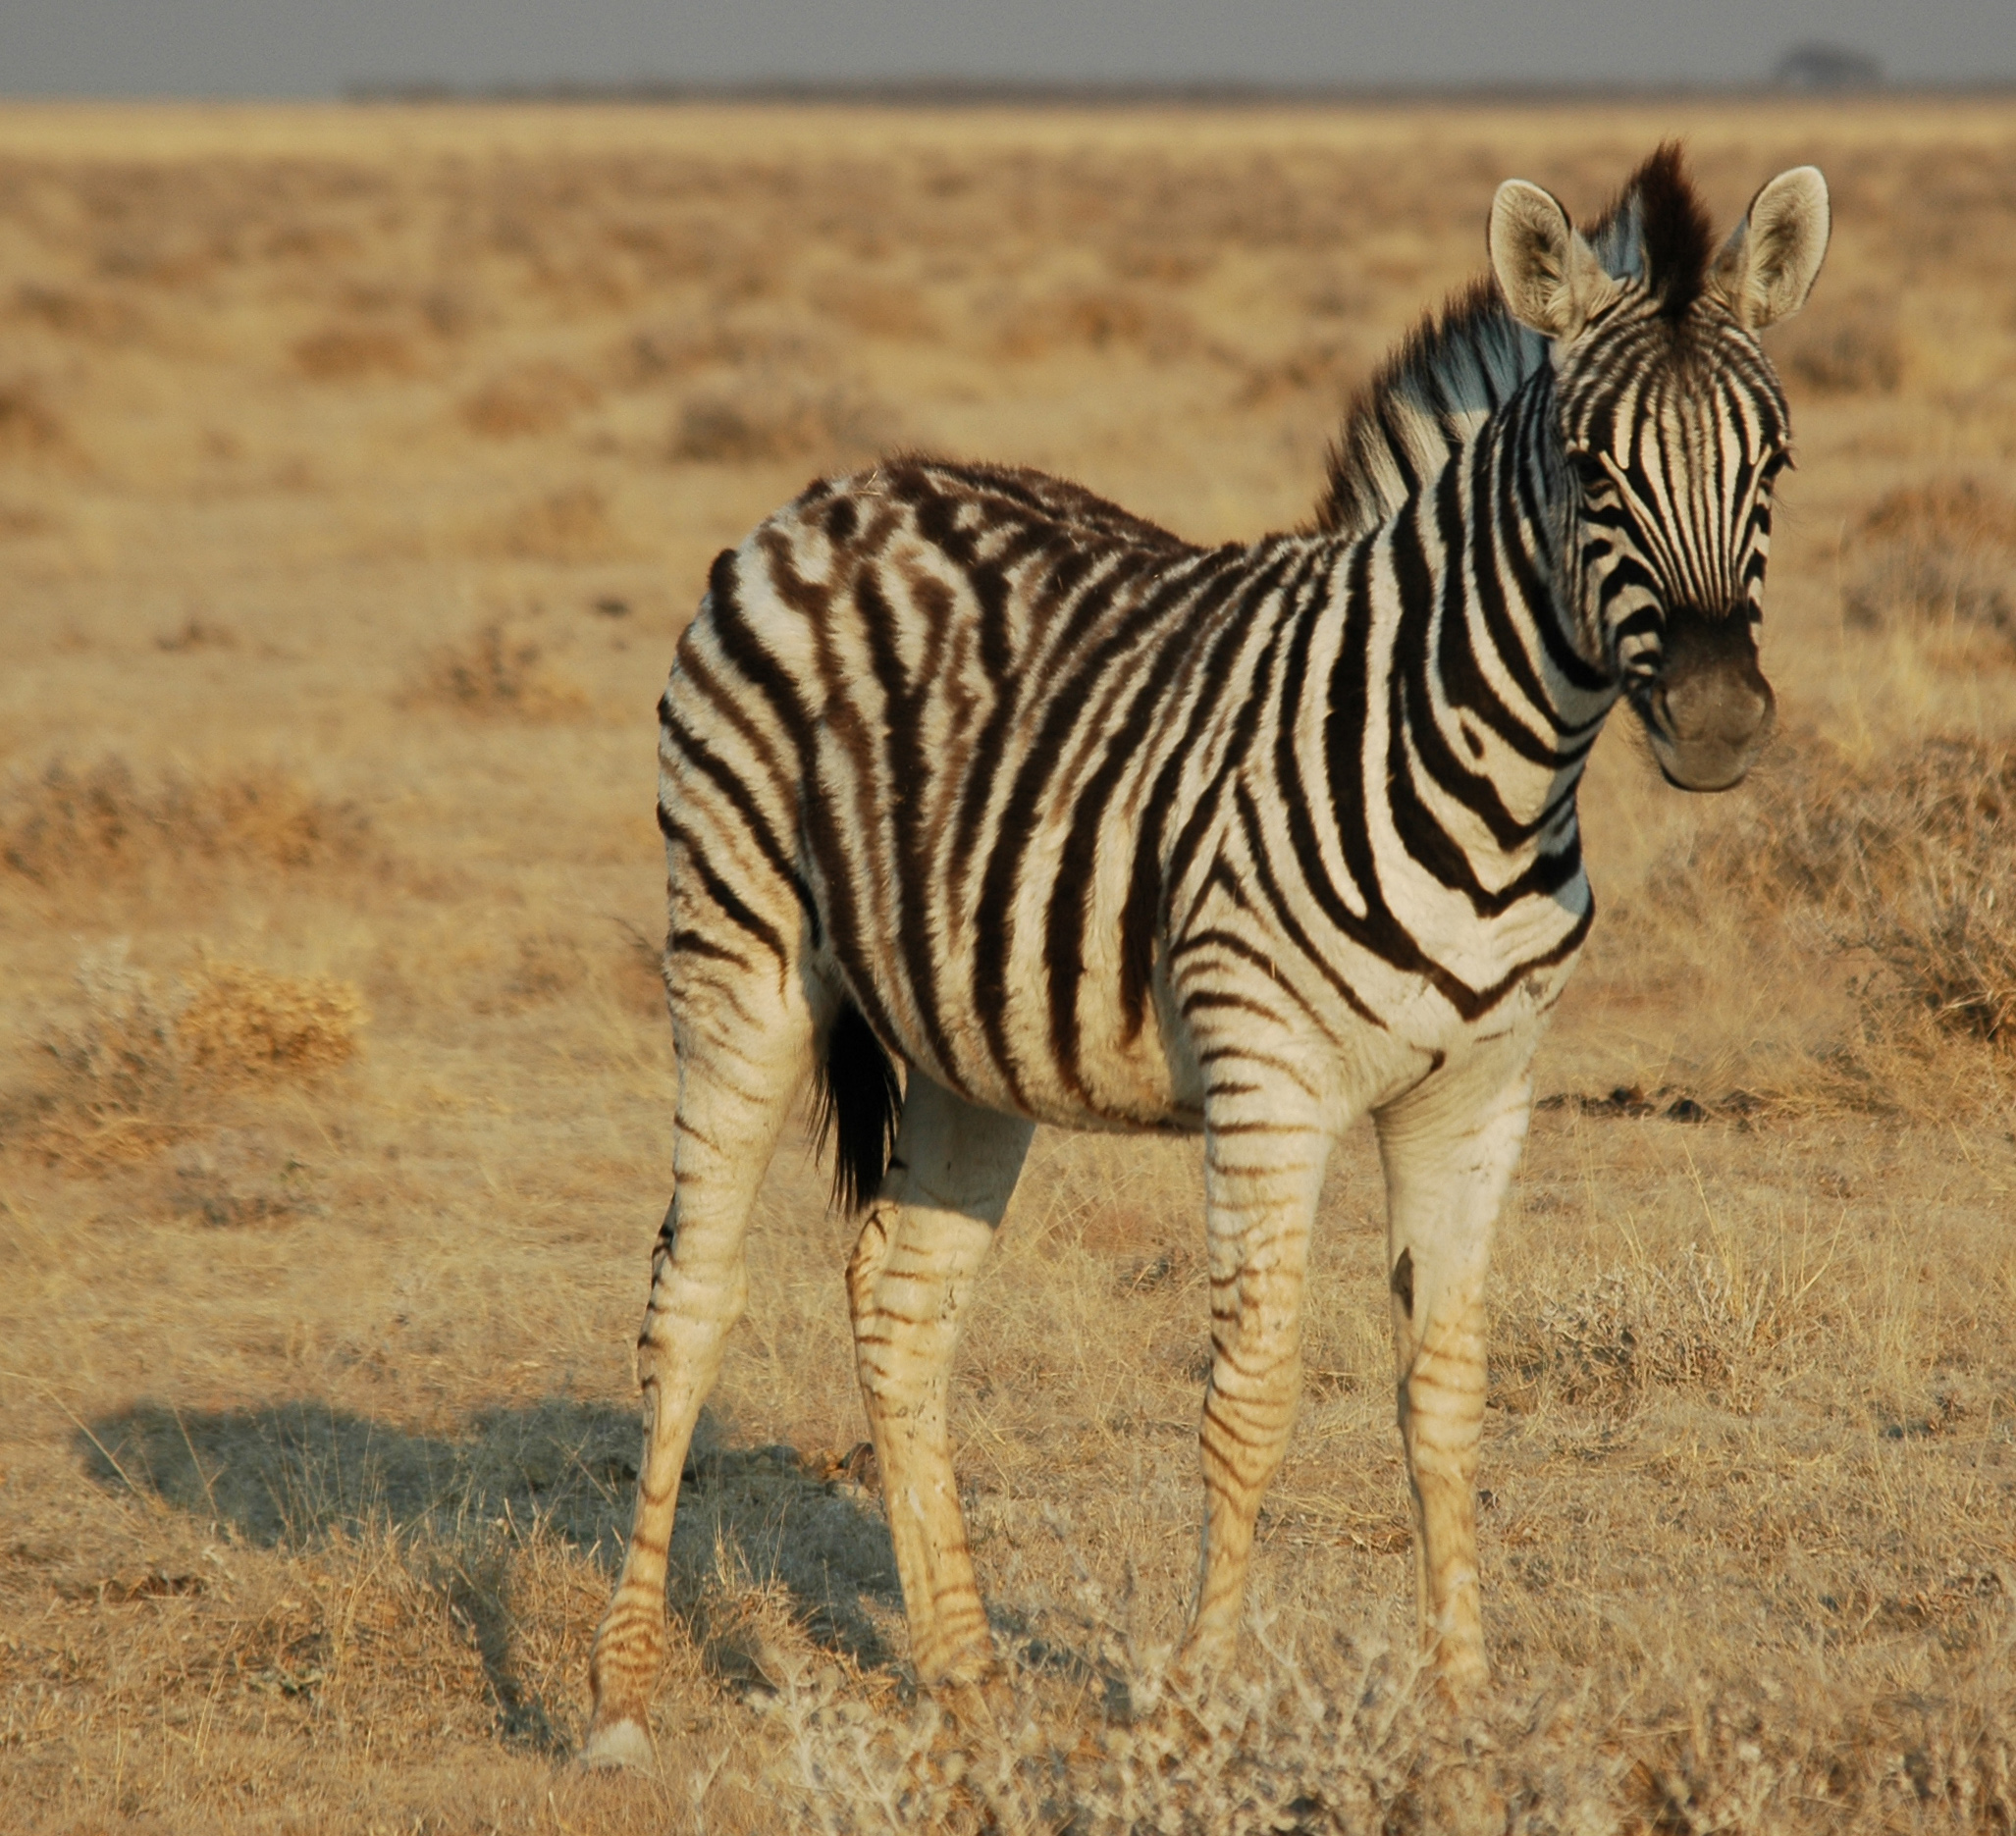 fichier namibie etosha zebre 02 jpg wikip dia. Black Bedroom Furniture Sets. Home Design Ideas